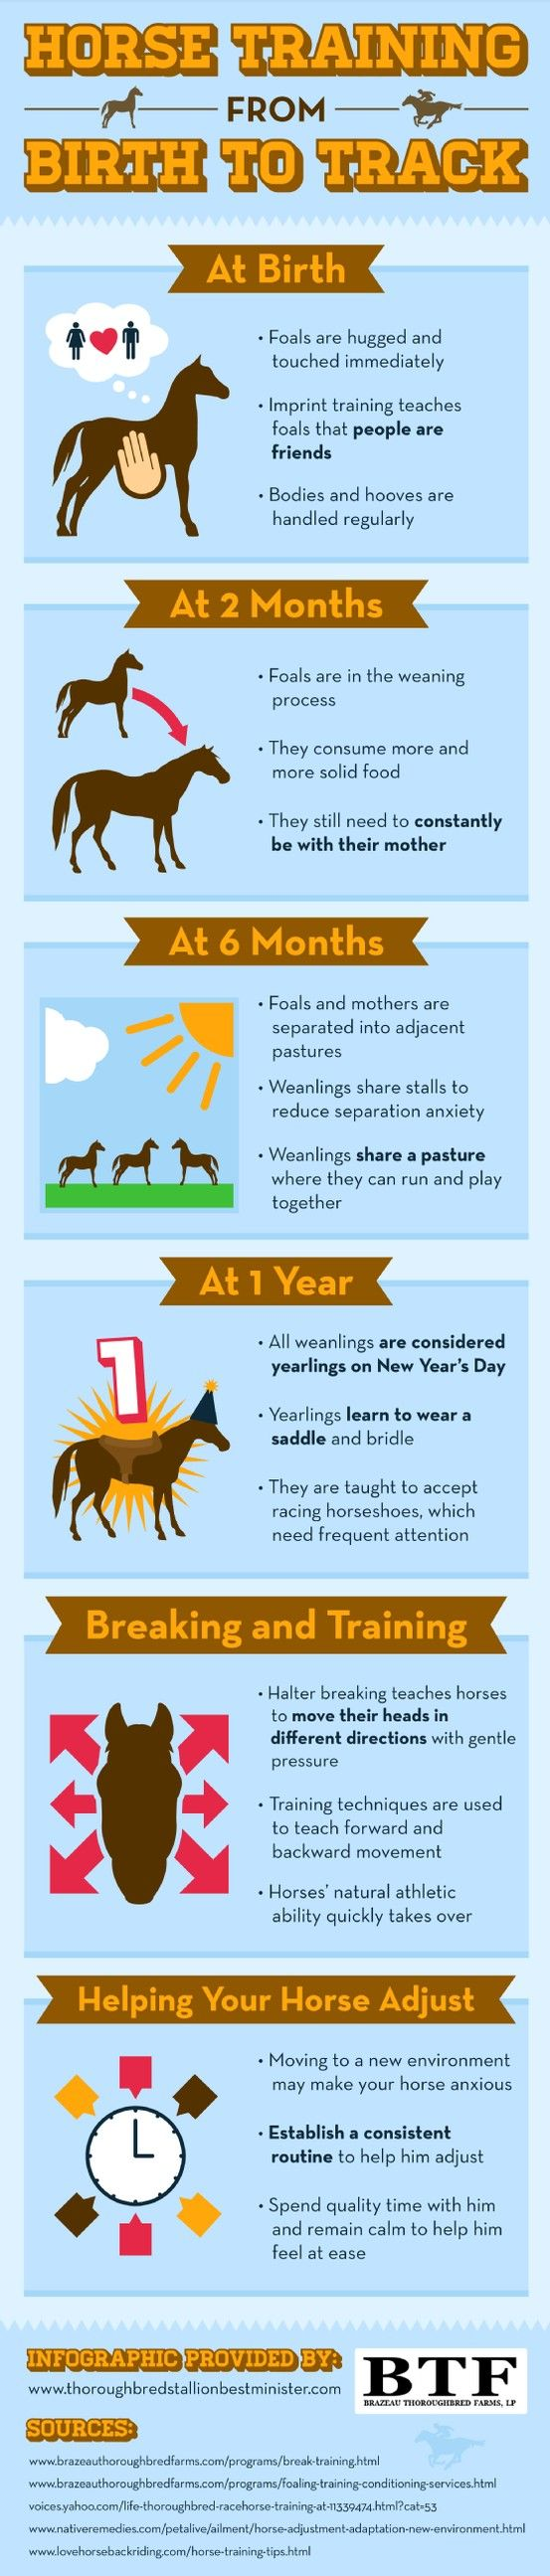 By the time a foal is two months old, he should start to eat solid food. During this time, however, a foal needs to be constantly near his mother. Learn about horse training in this infographic from a horse breeder.